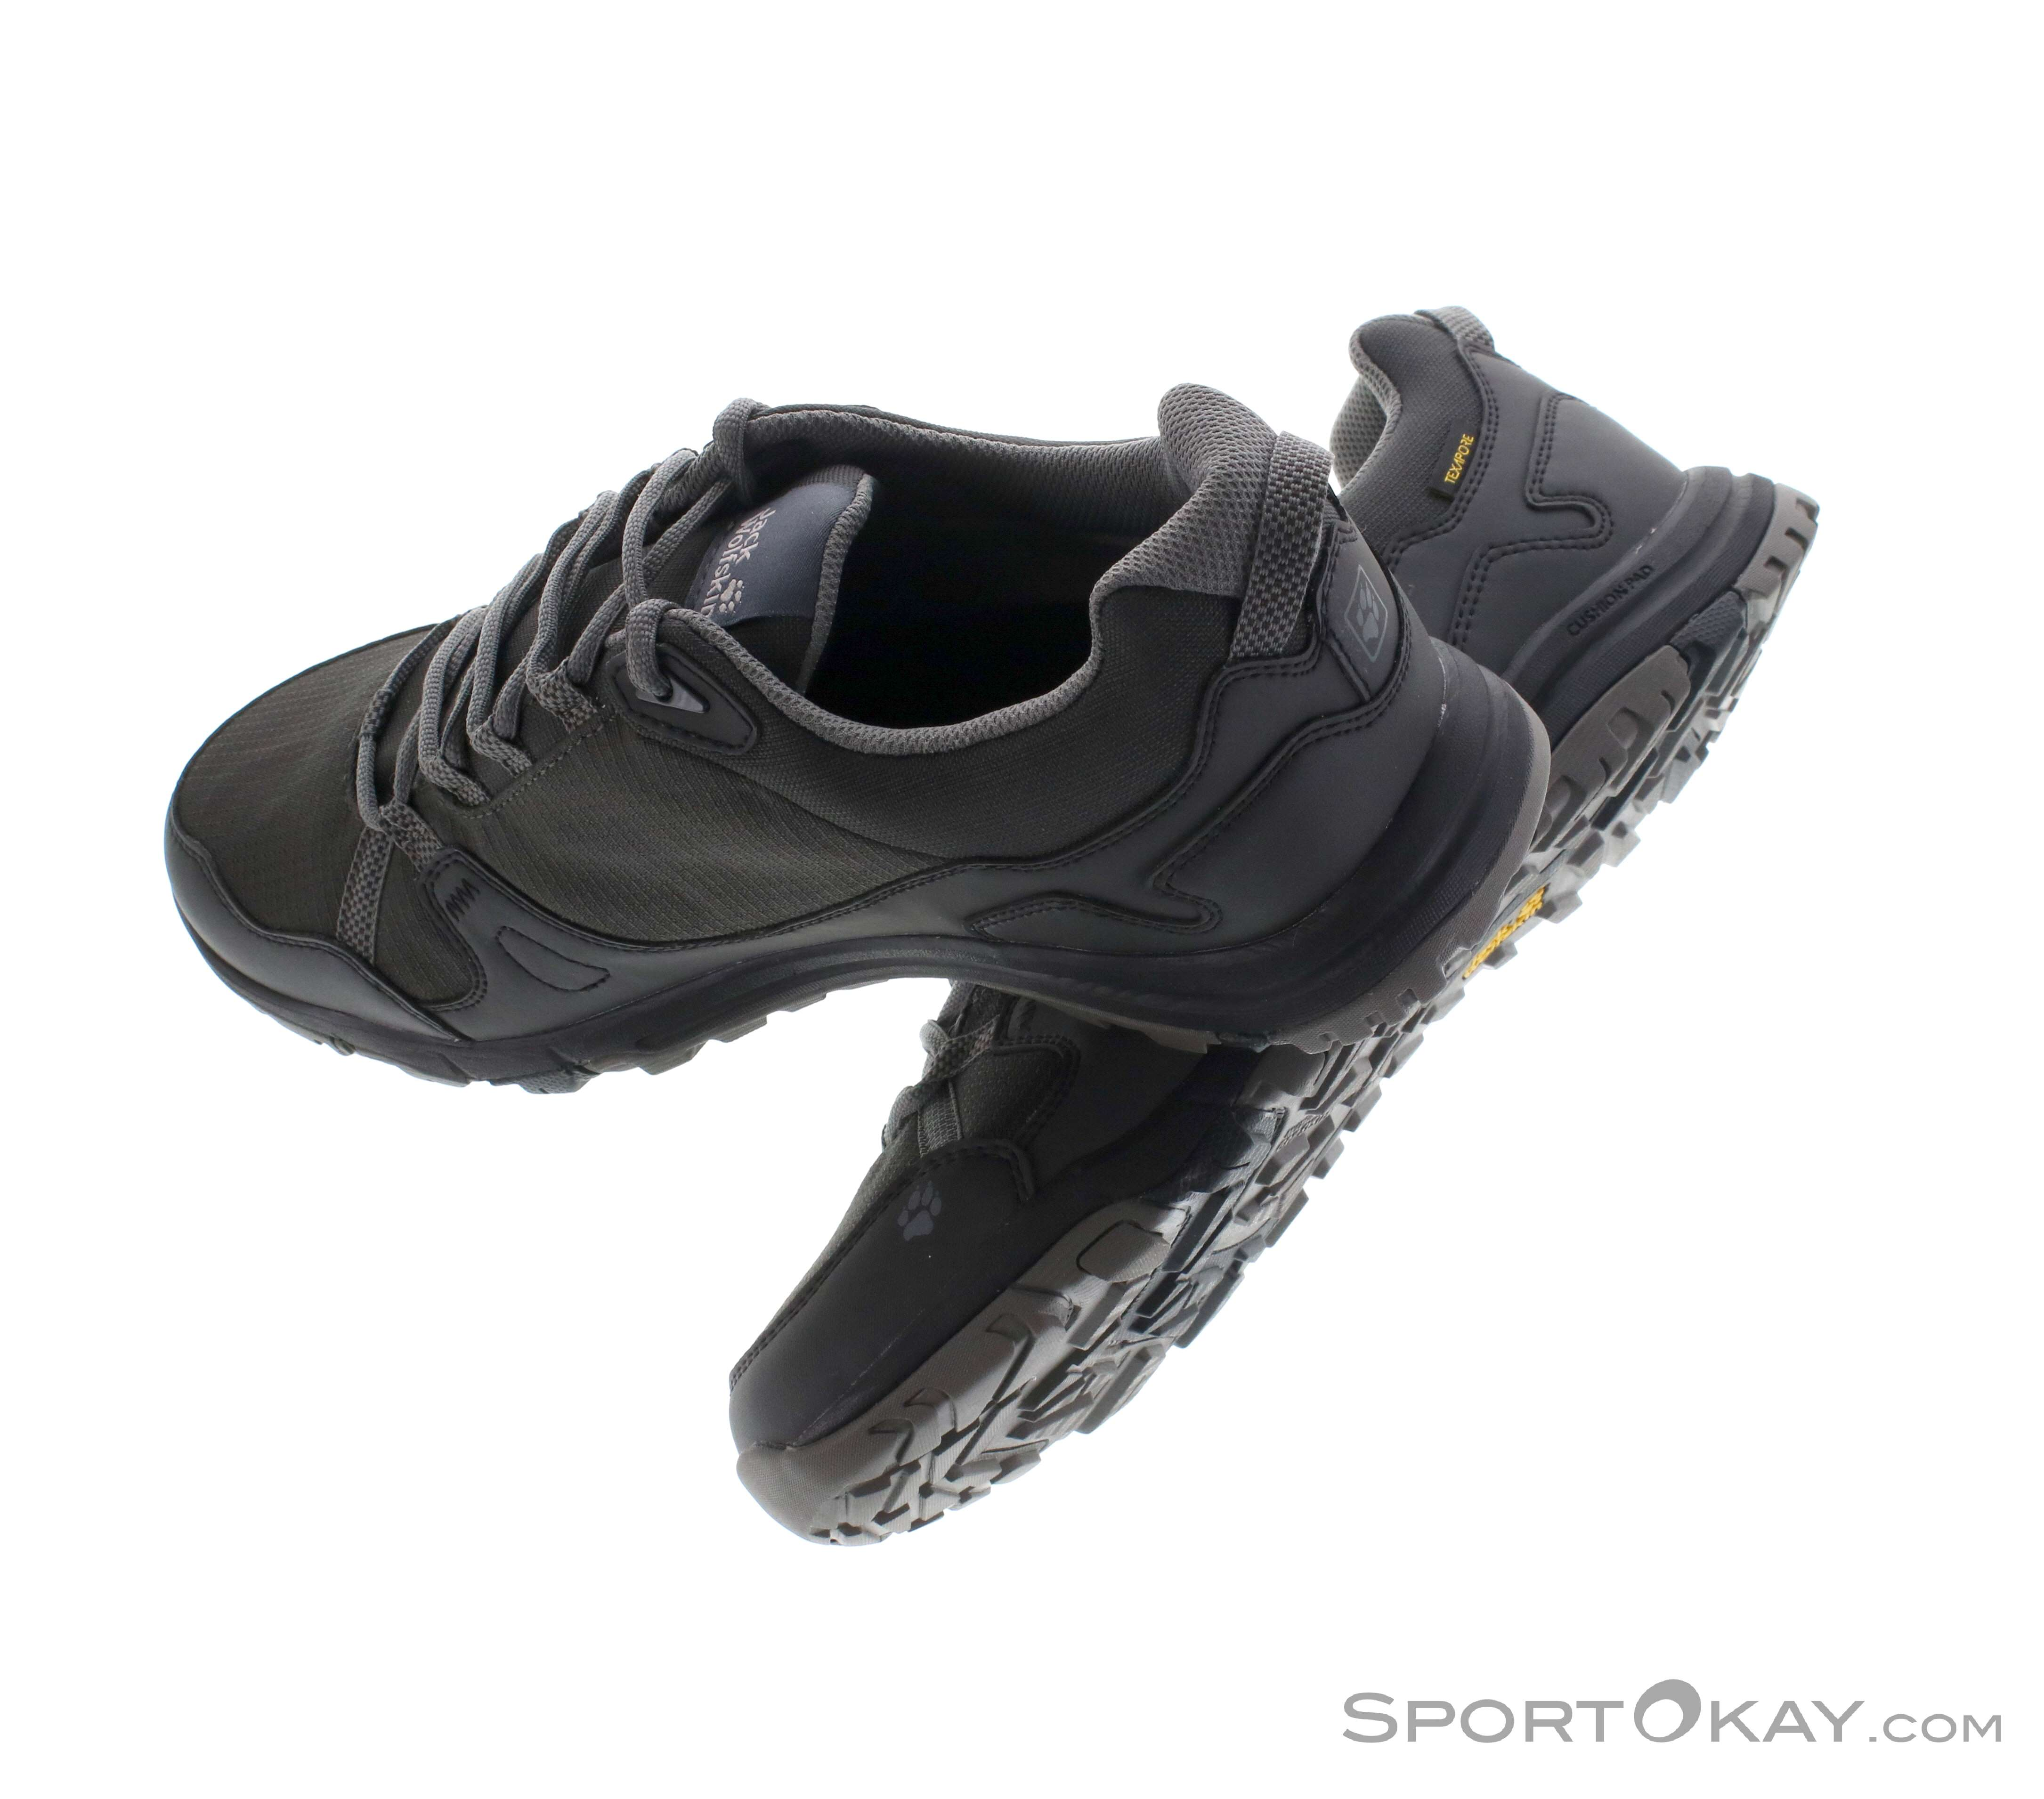 Wolfskin Texapore Shoes Mens Low Activate Trekking Jack POknw80